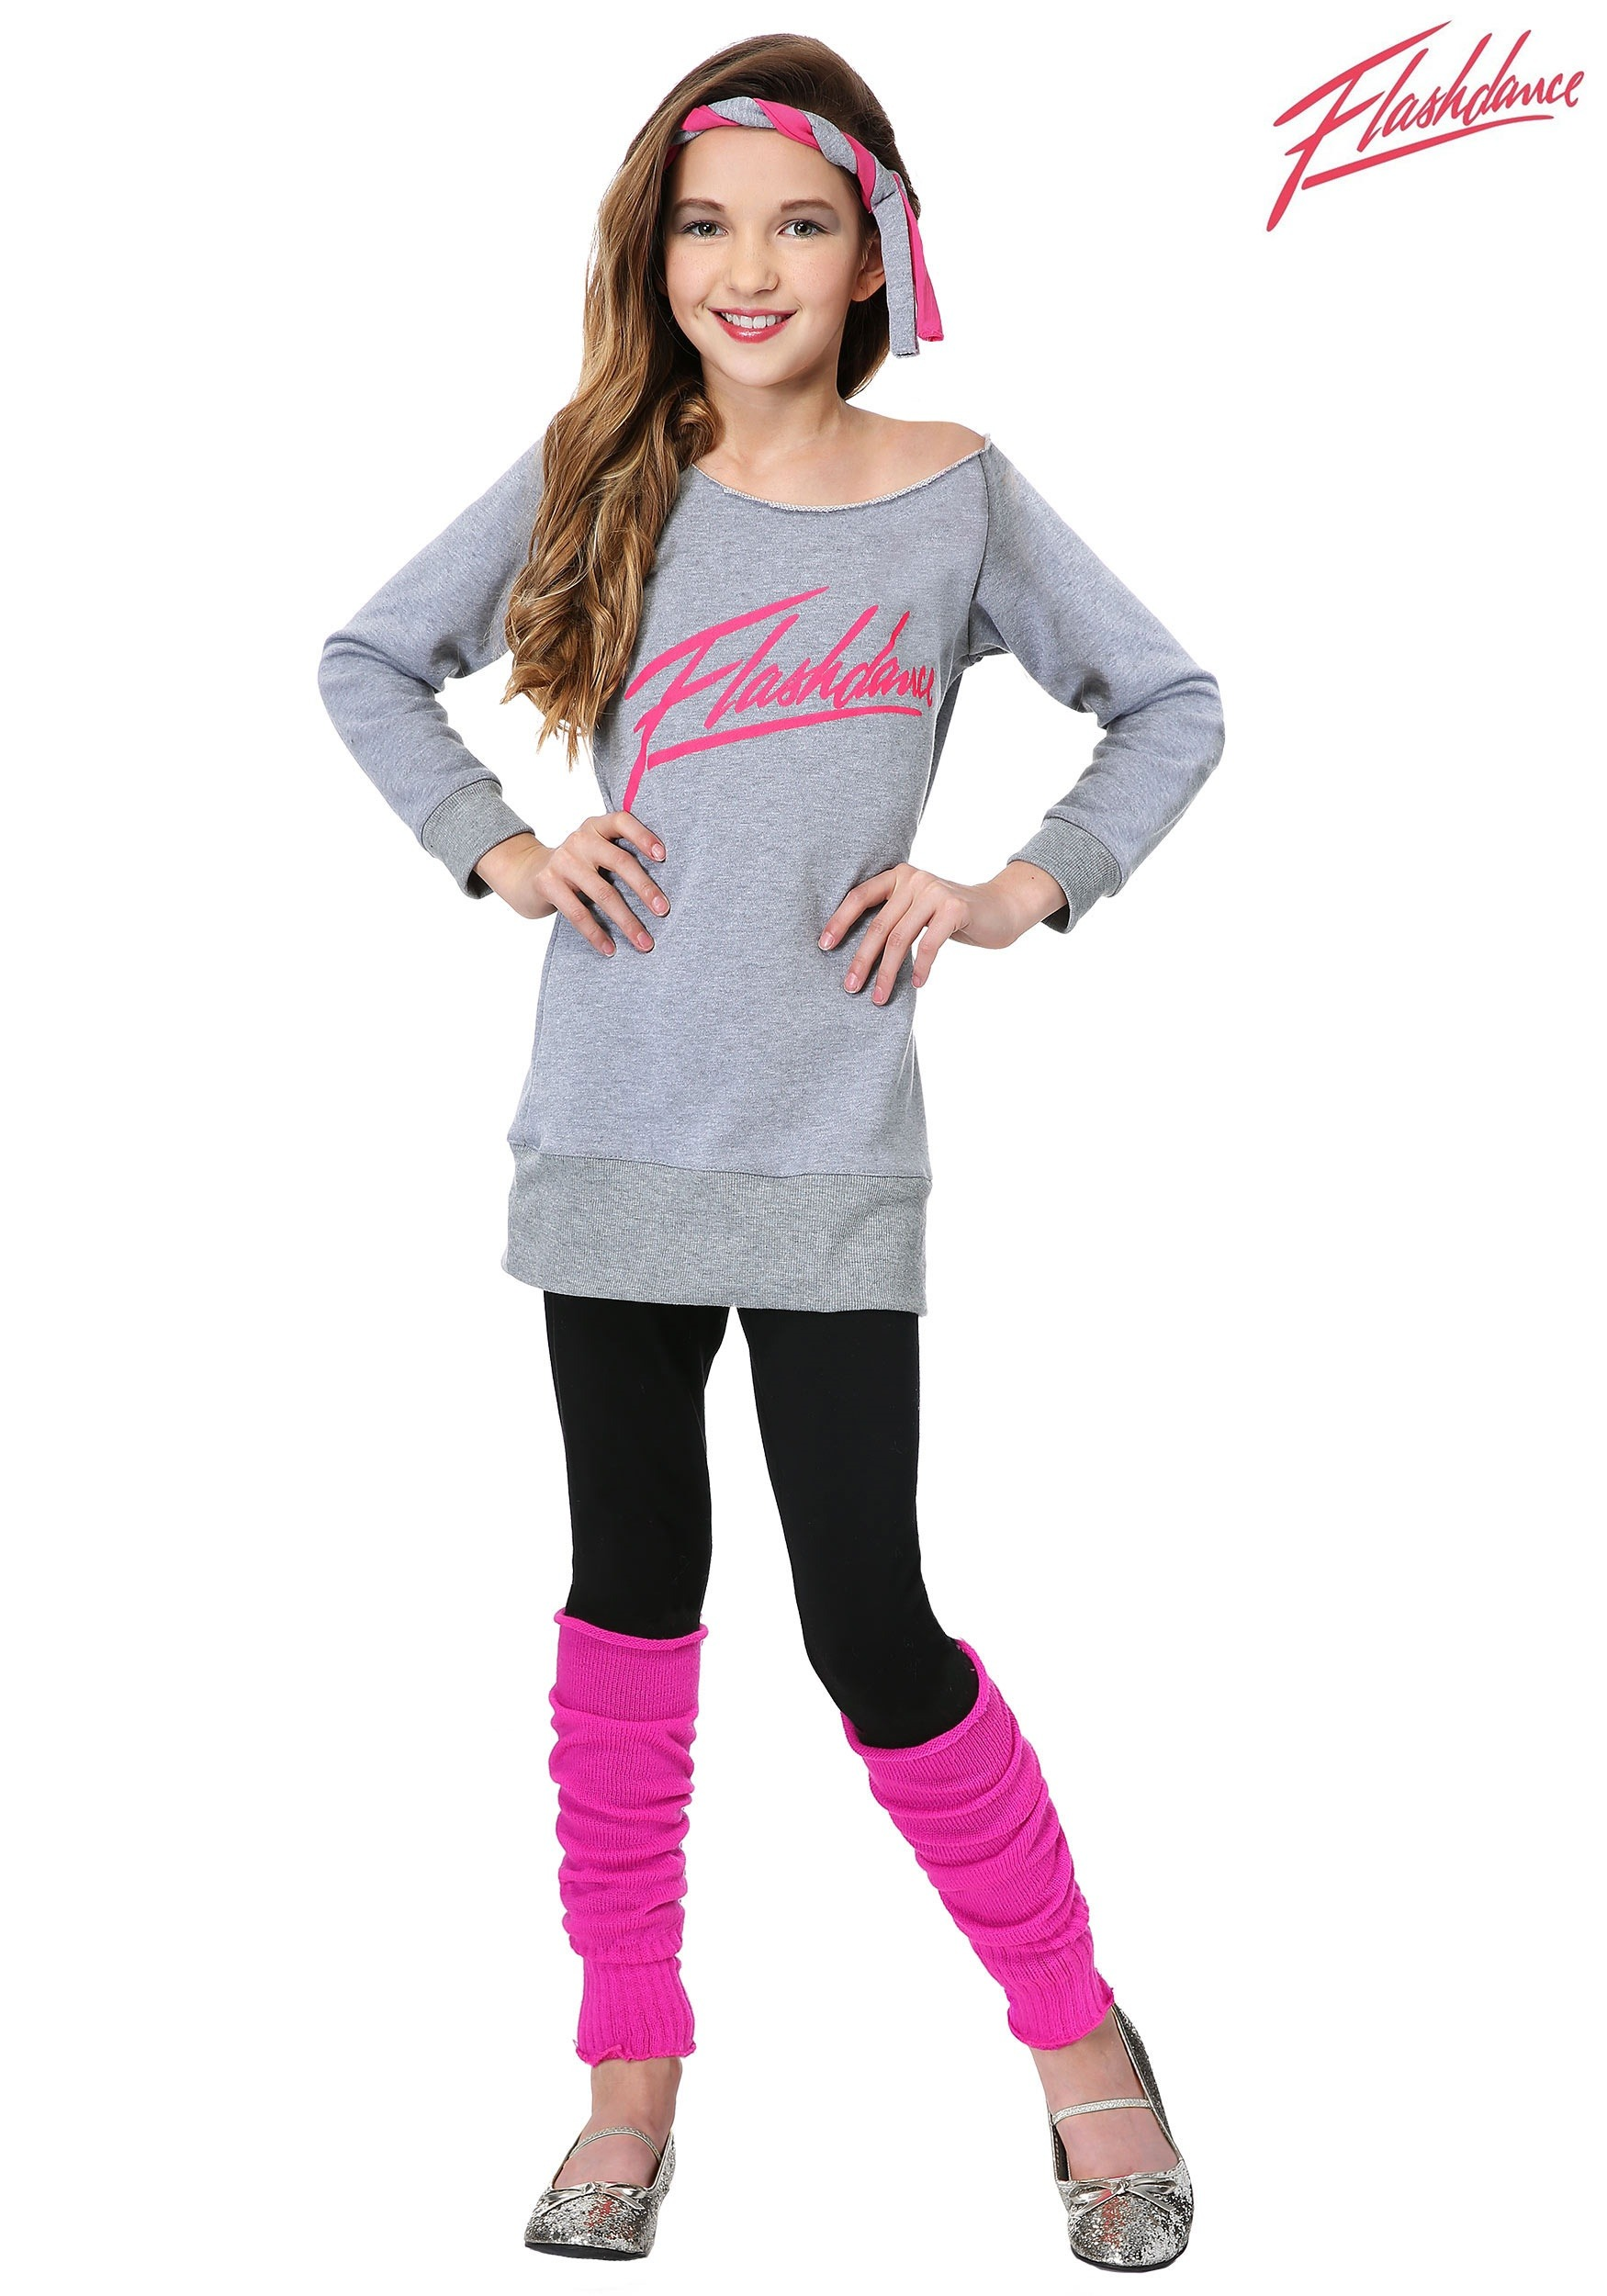 Child Flashdance Costume  sc 1 st  Halloween Costumes & Officially Licensed Child Flashdance Costume